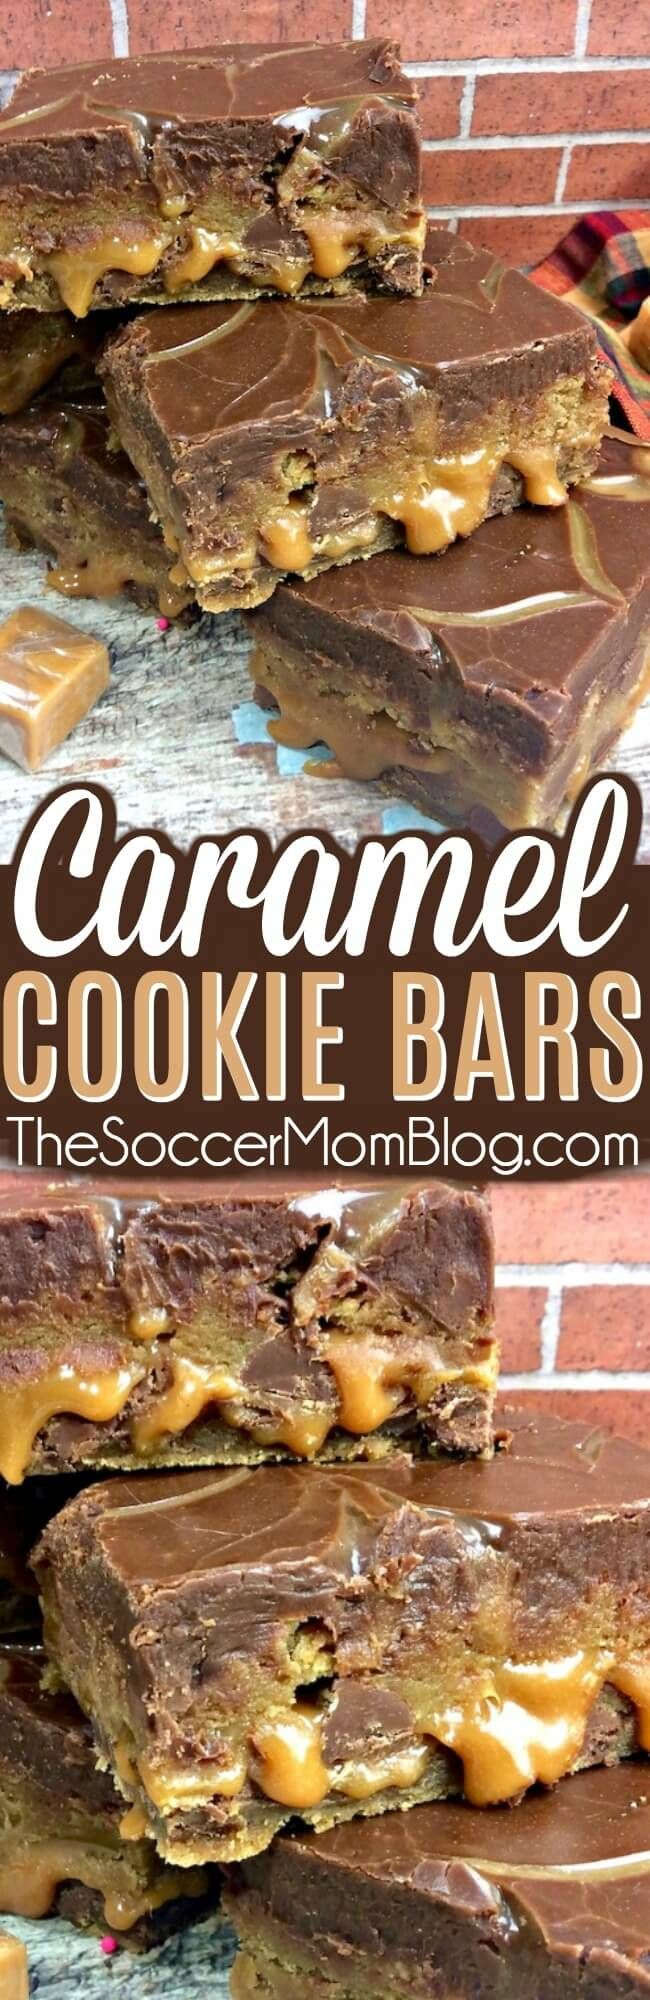 Cookie...caramel...more cookie...topped with rich chocolate ganache - these Salted Caramel Chocolate Chip Cookie Bars are out of this world! #chocolate #desserts via @https://www.pinterest.com/soccermomblog